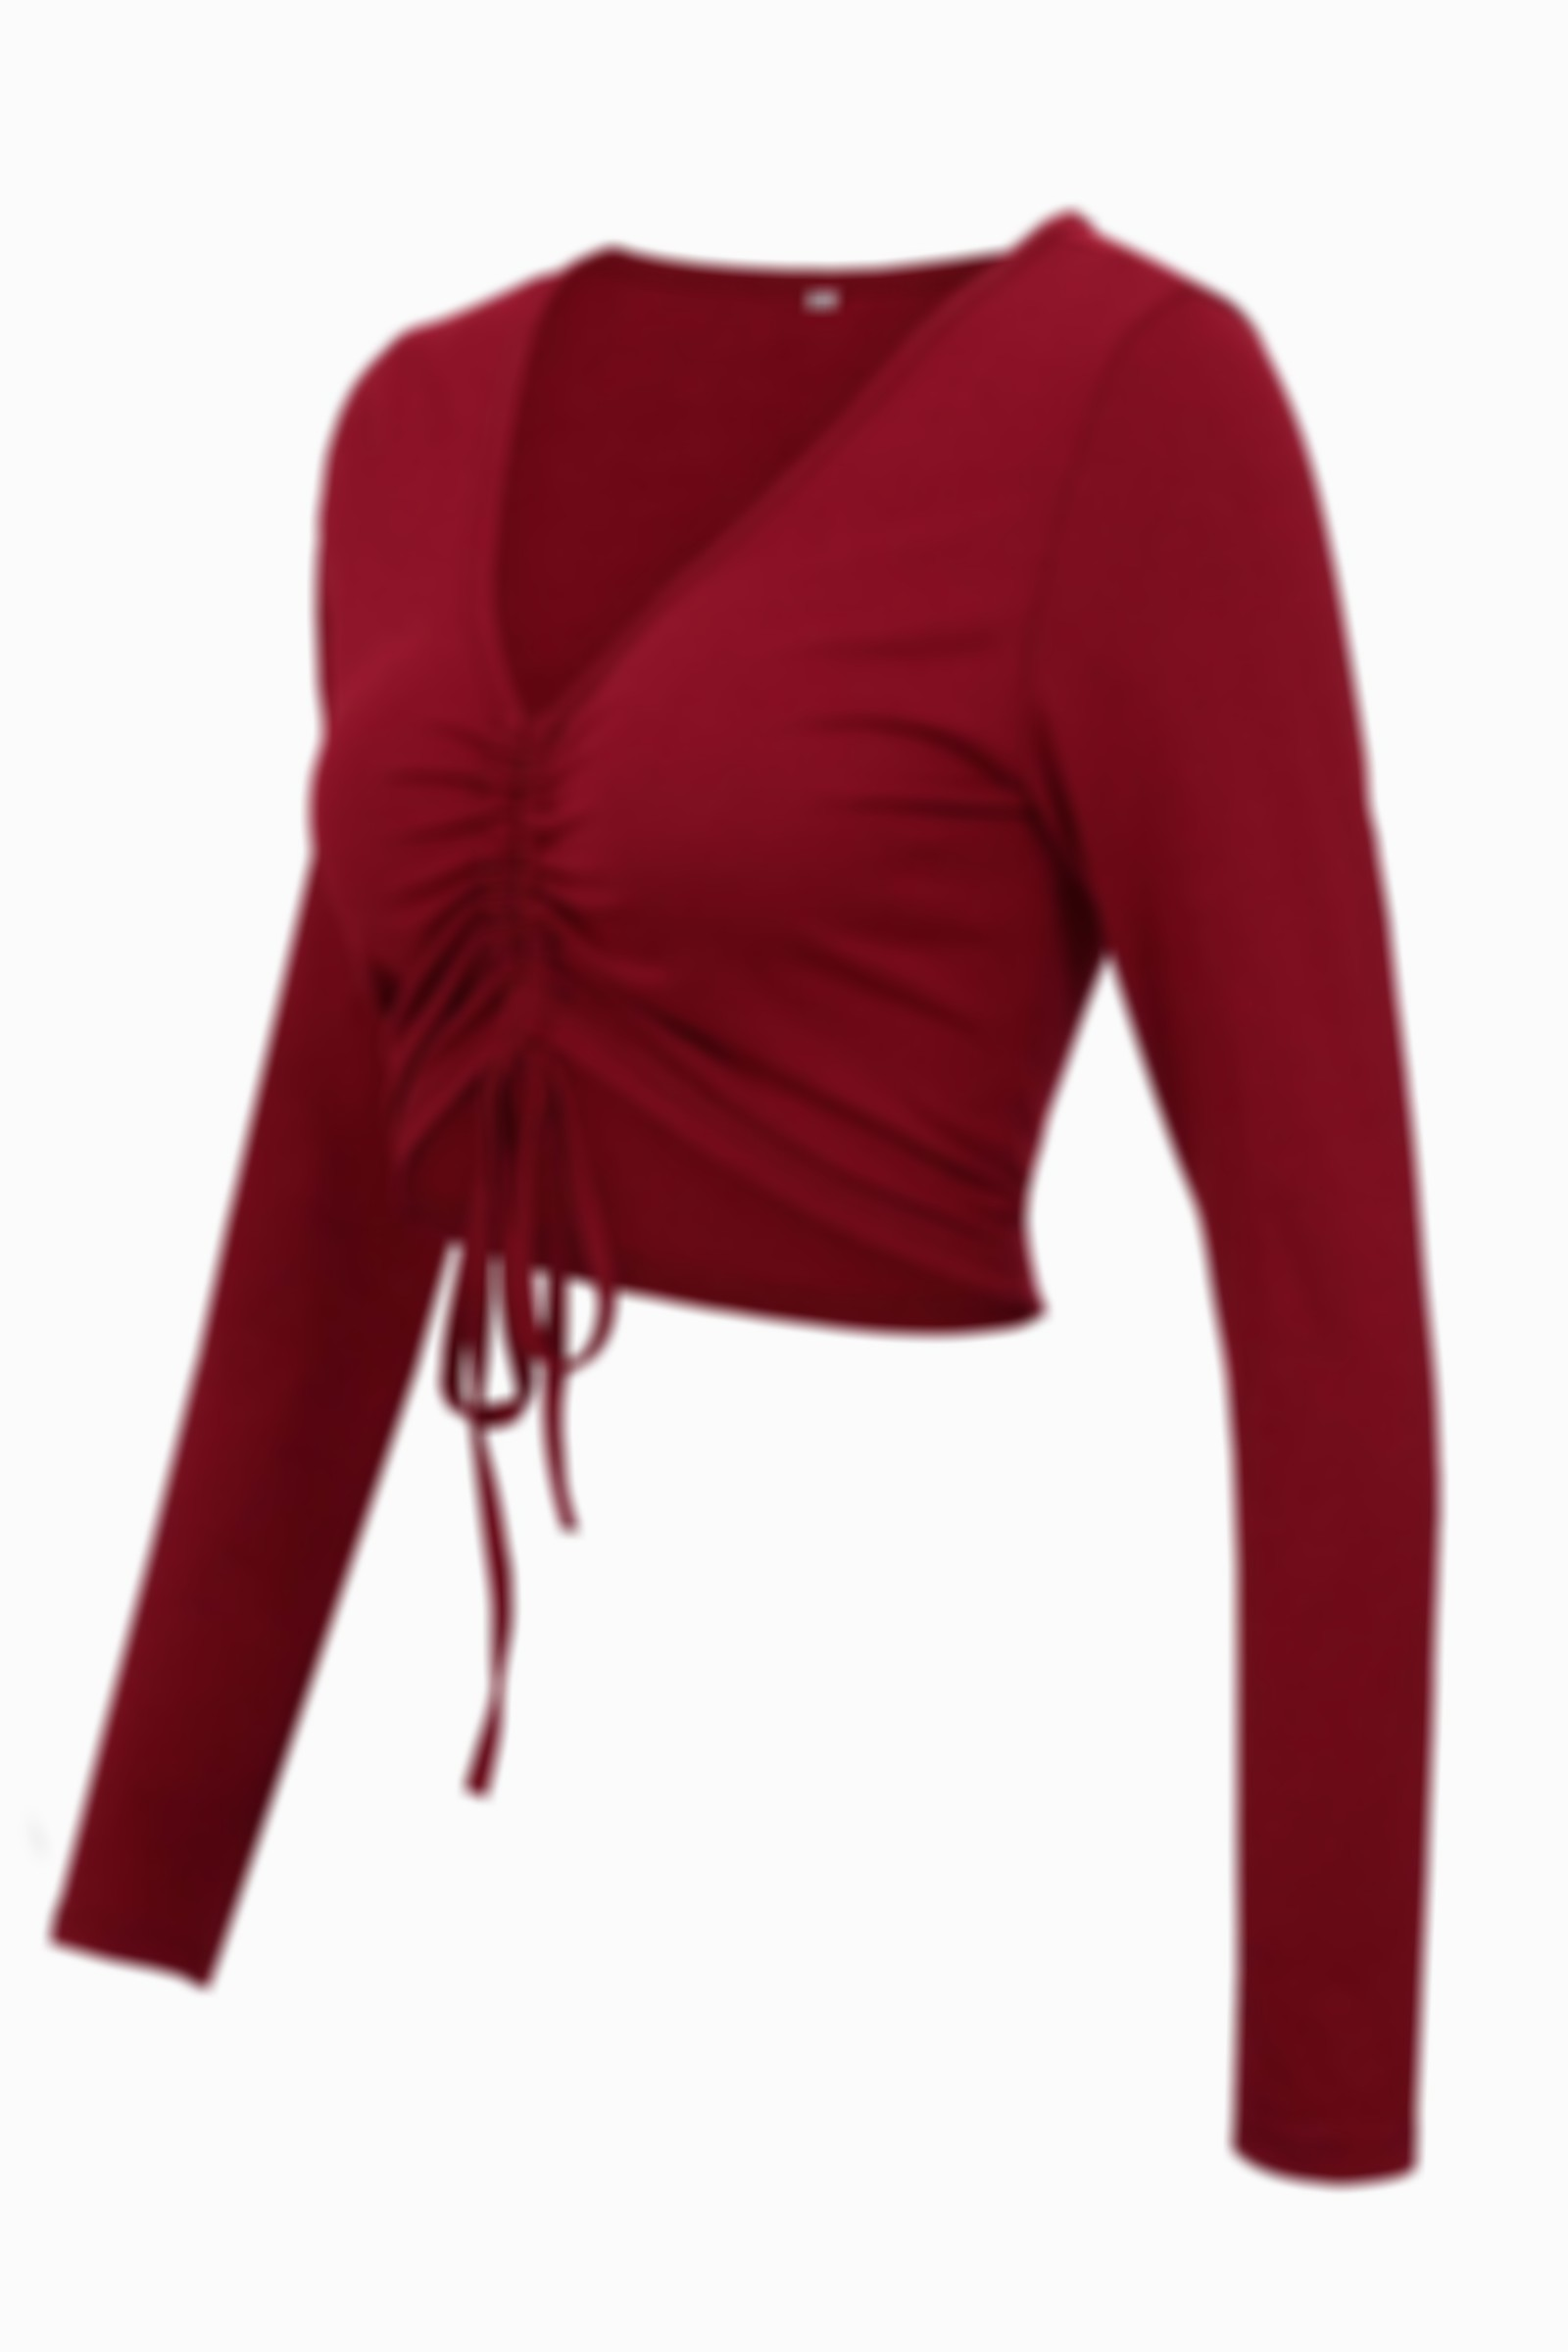 V-Neck Tight-Fitting Long-Sleeved Umbilical Lace-Up Top